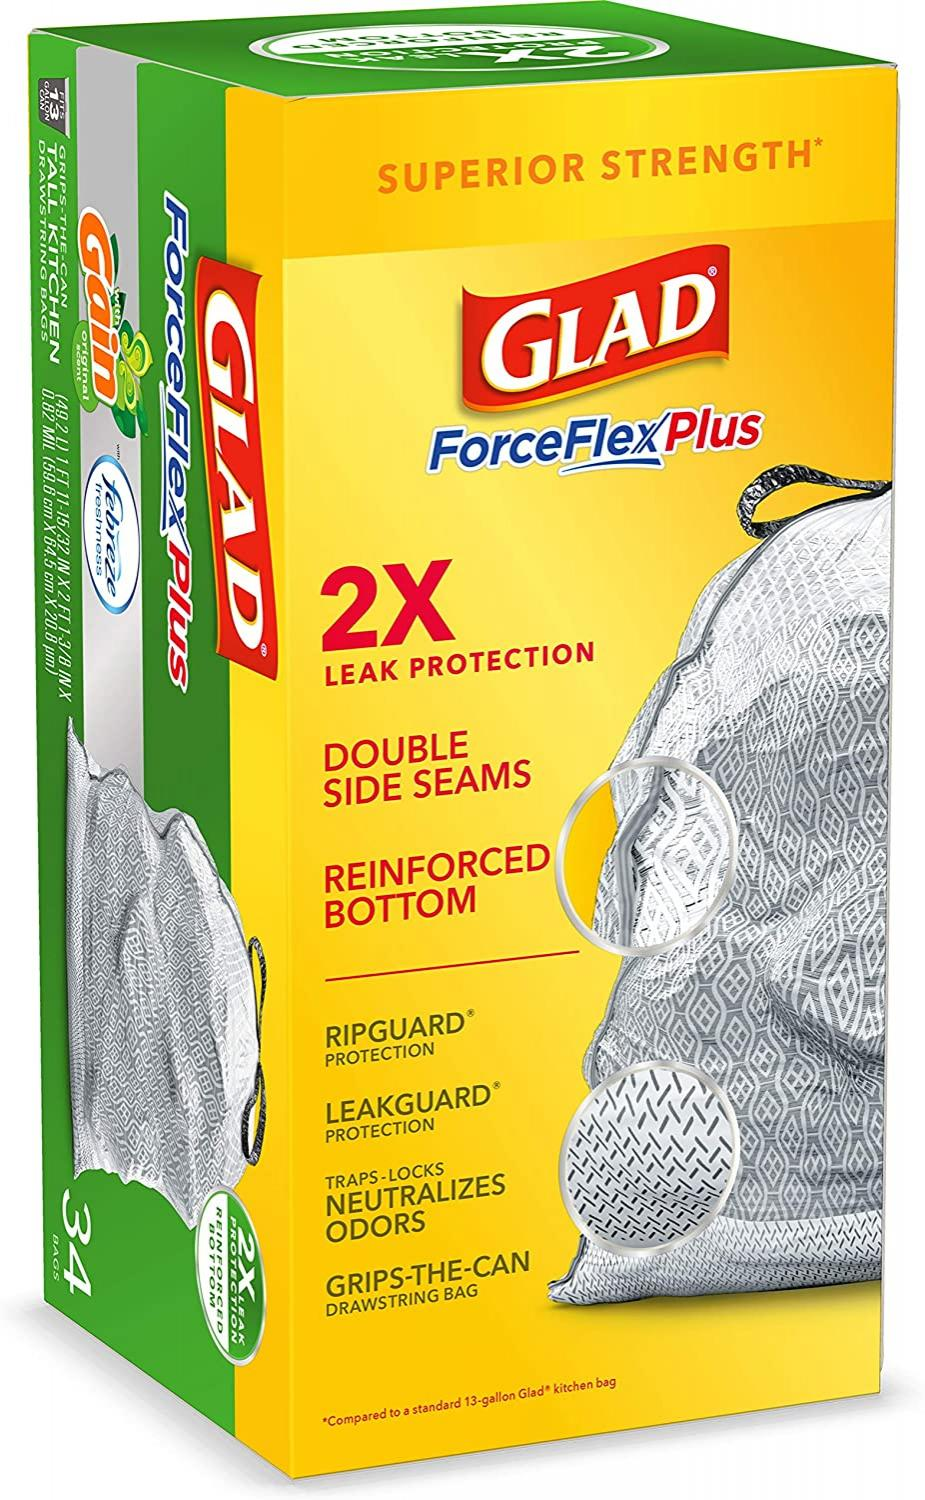 Glad ForceFlexPlus Tall Kitchen Drawstring Trash Bags, 13 Gallon Grey Trash Bag, Gain Original with Febreze Freshness 34 Count (Package May Vary)